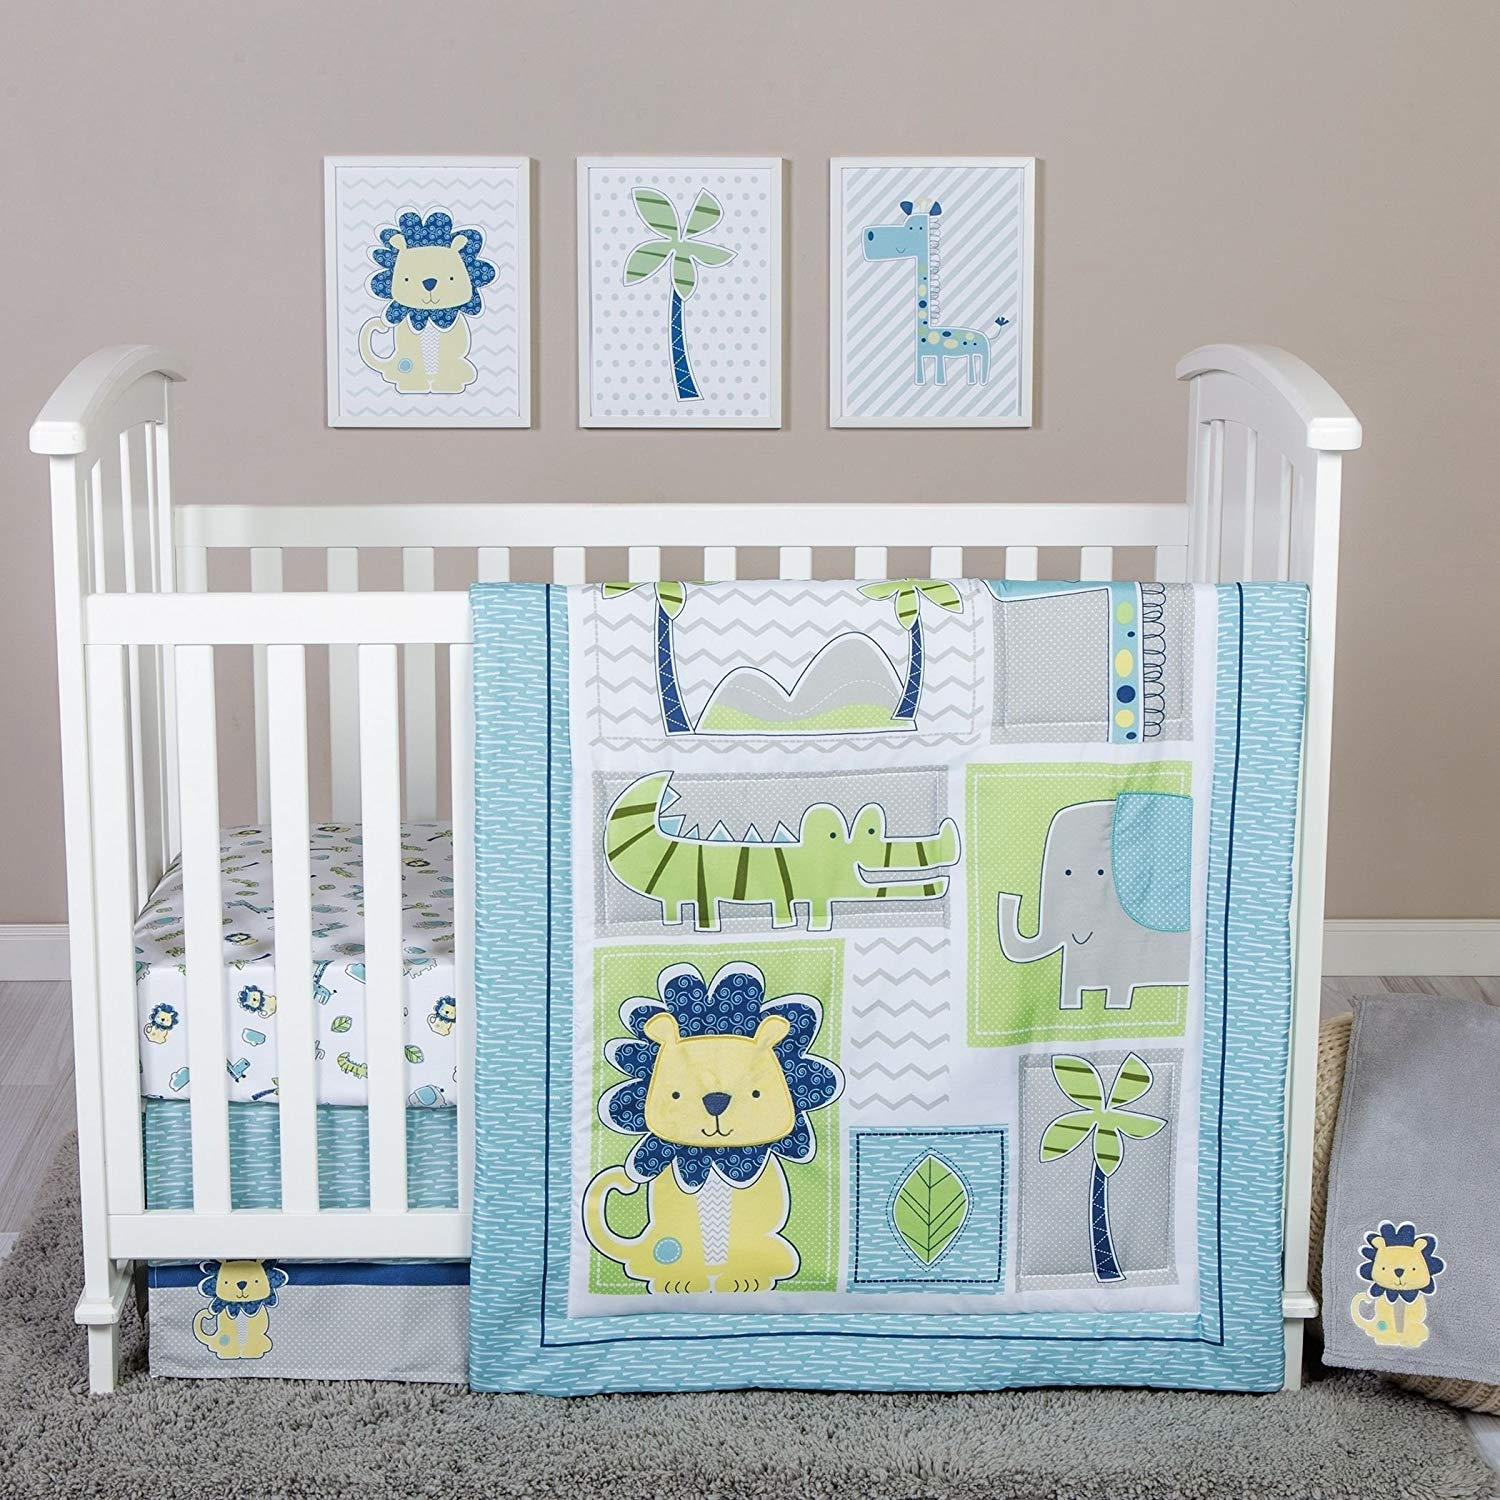 Patchwork Set Baby Buy 4 Piece Baby Boys Blue Green Yellow Jungle Crib Bedding